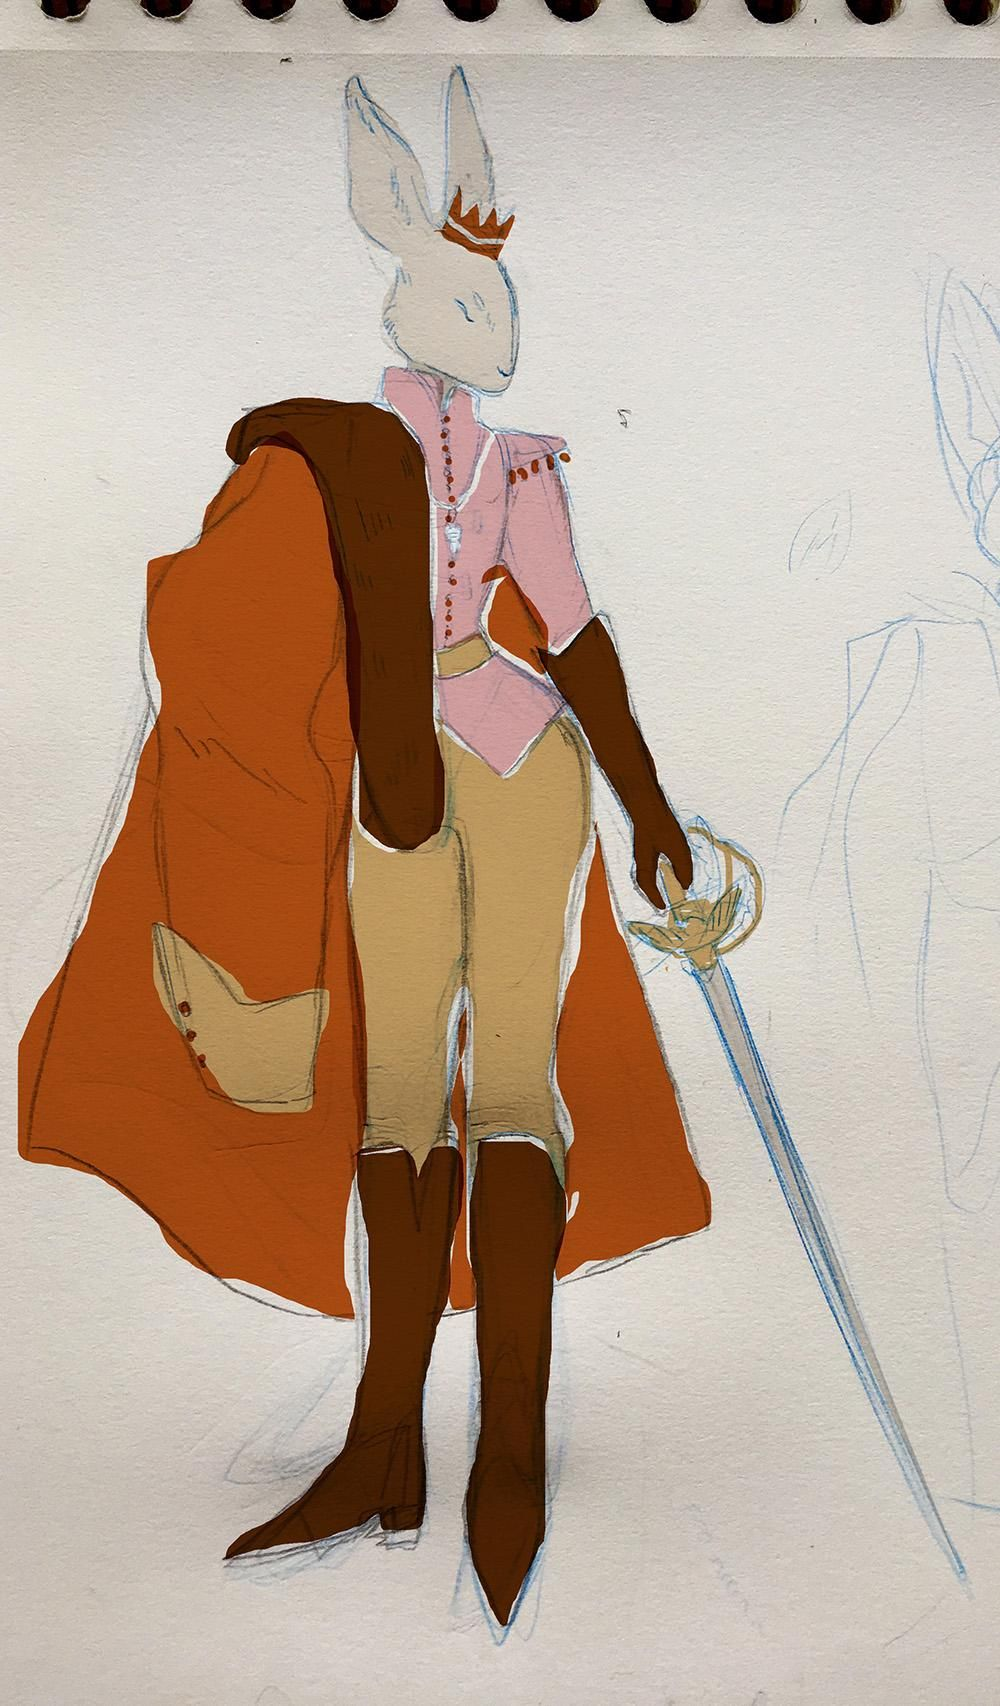 Bunny Prince - image 3 - student project